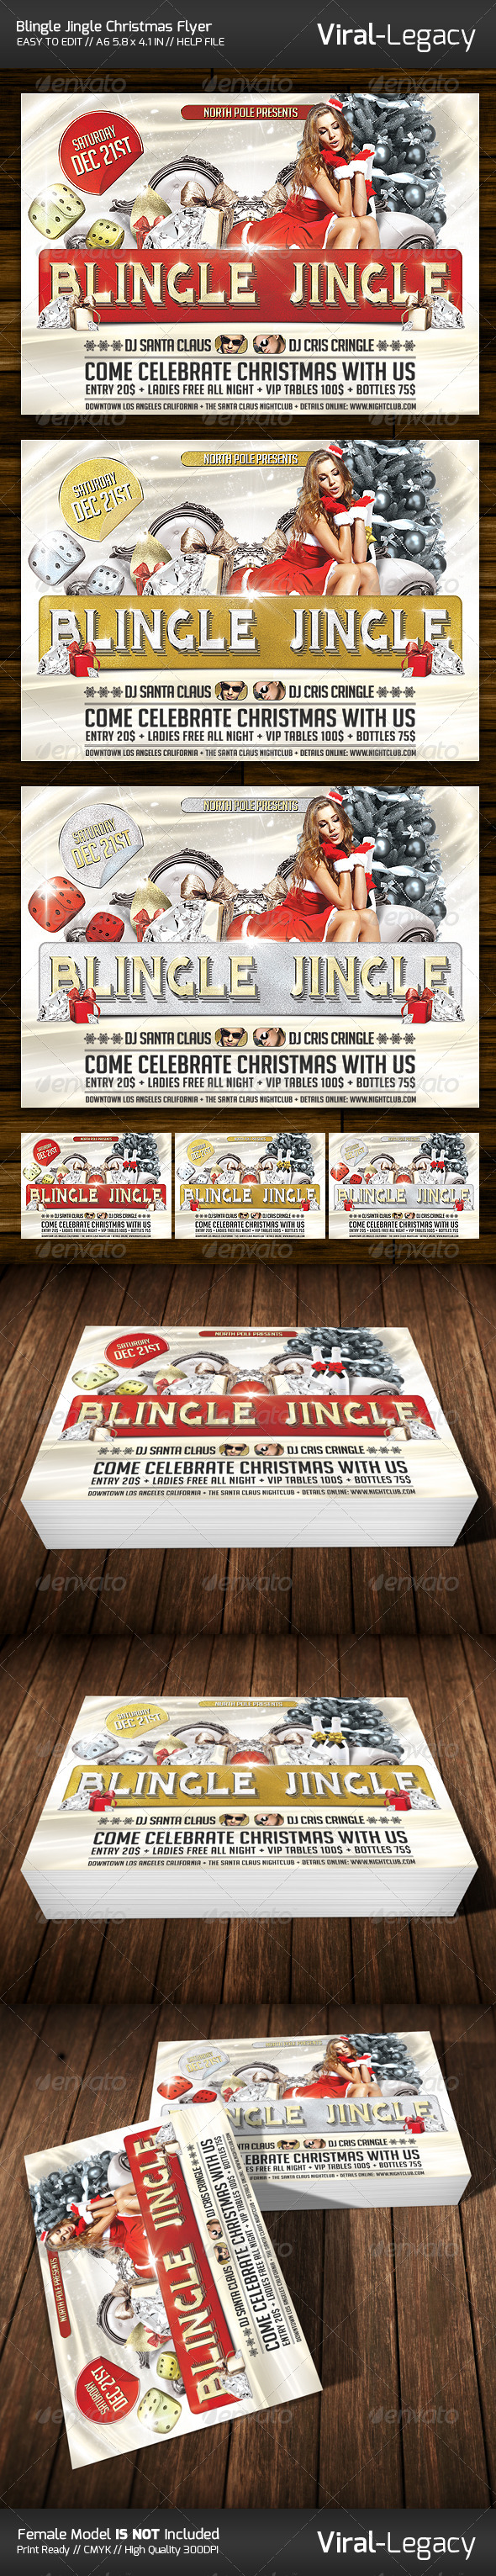 Blingle Jingle Christmas Flyer - Events Flyers